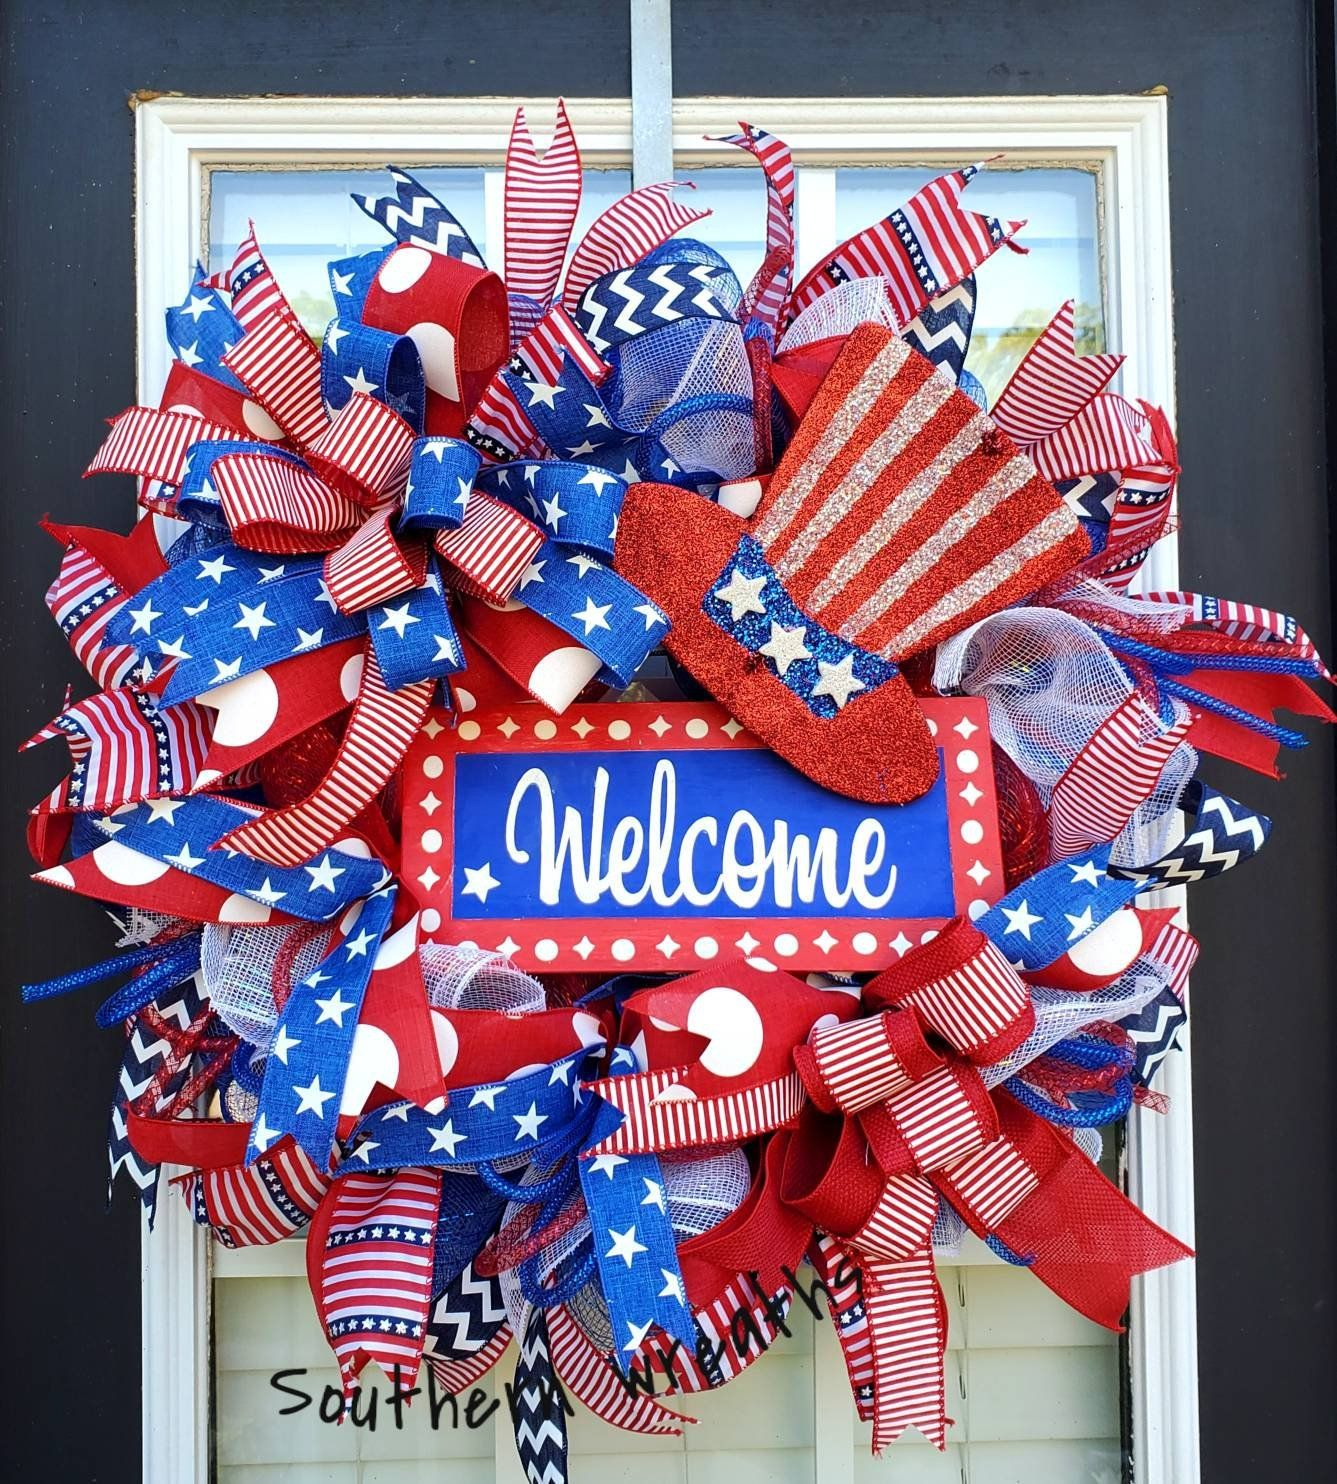 Patriotic Uncle Sam Welcome Wreath Stars And Stripes Decor Patriotic Decorations July 4th Wreat Patriotic Decorations Holiday Wreath Easy 4th Of July Wreath